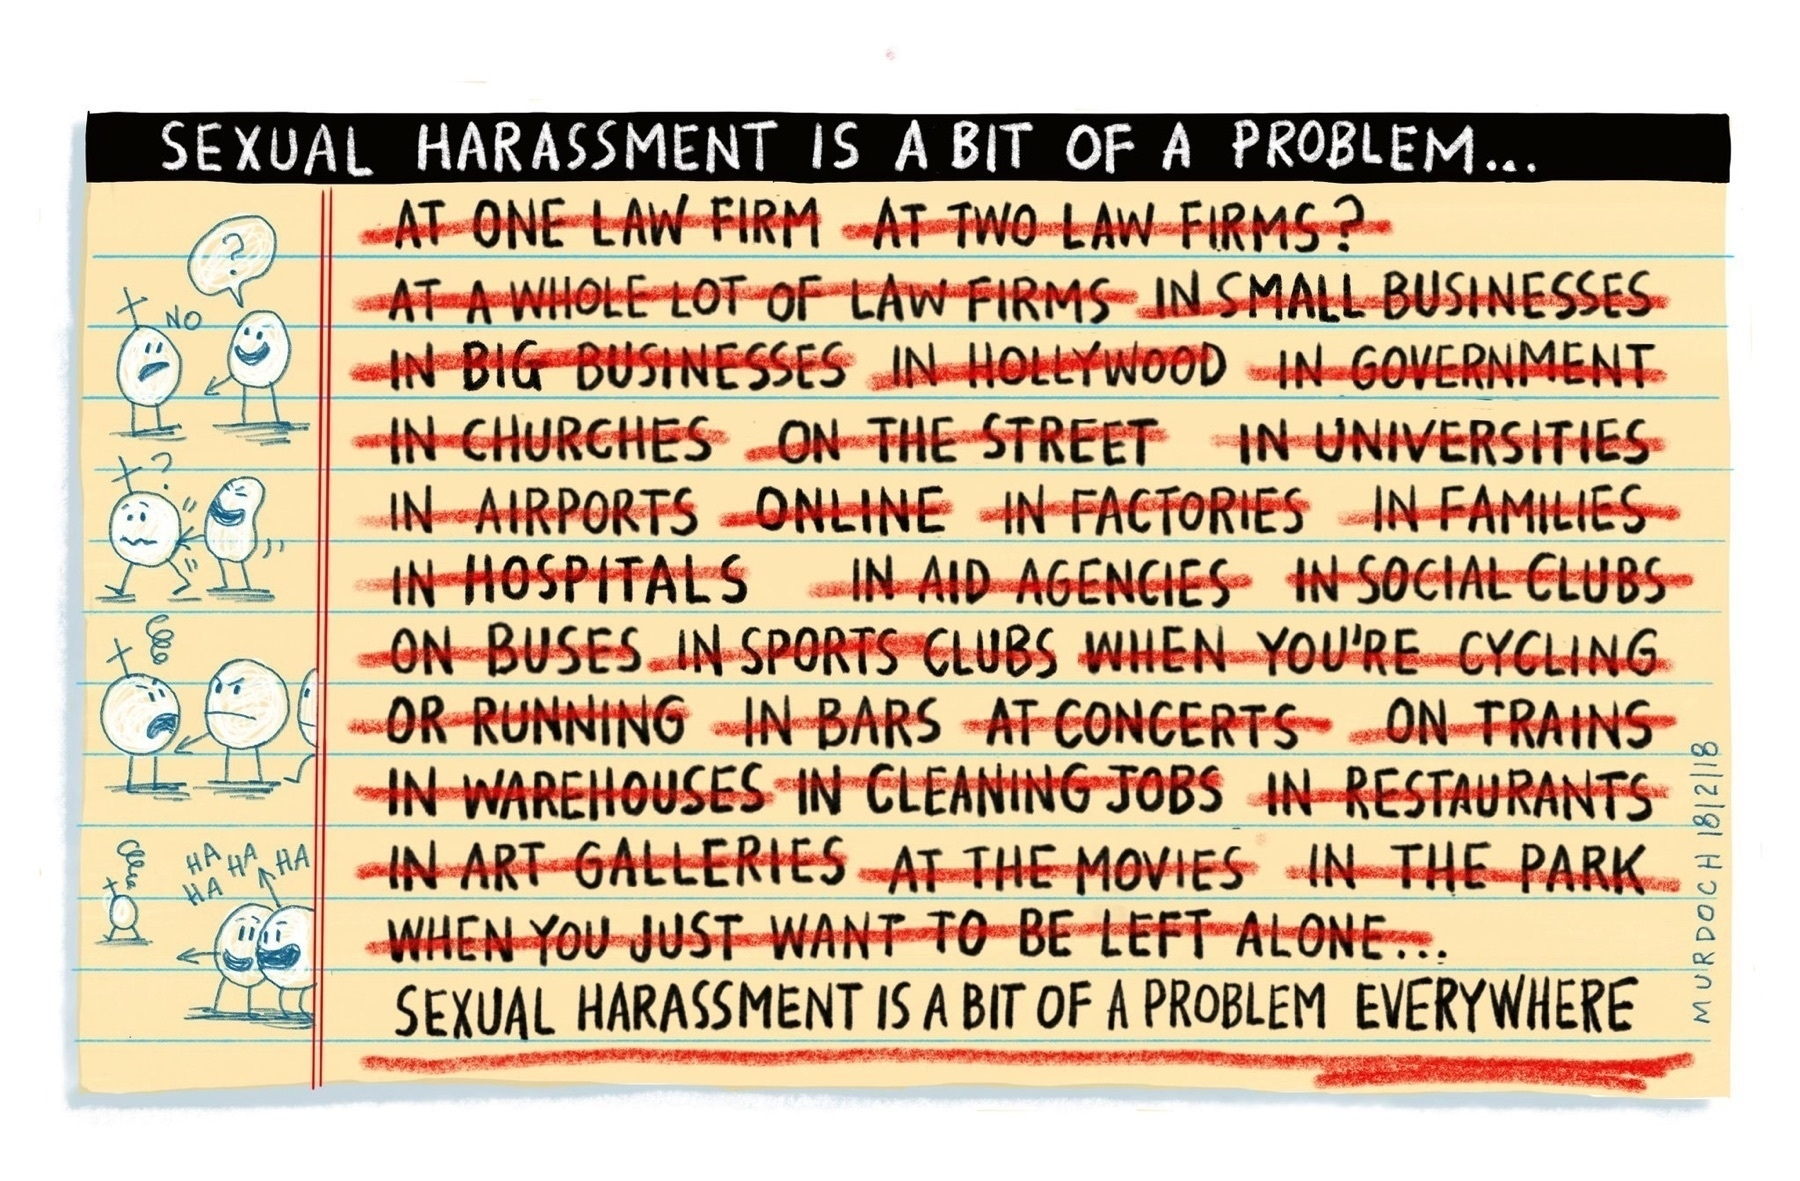 Long list of places where sexual harassment is a problem, all crossed out and replaced with 'everywhere'.